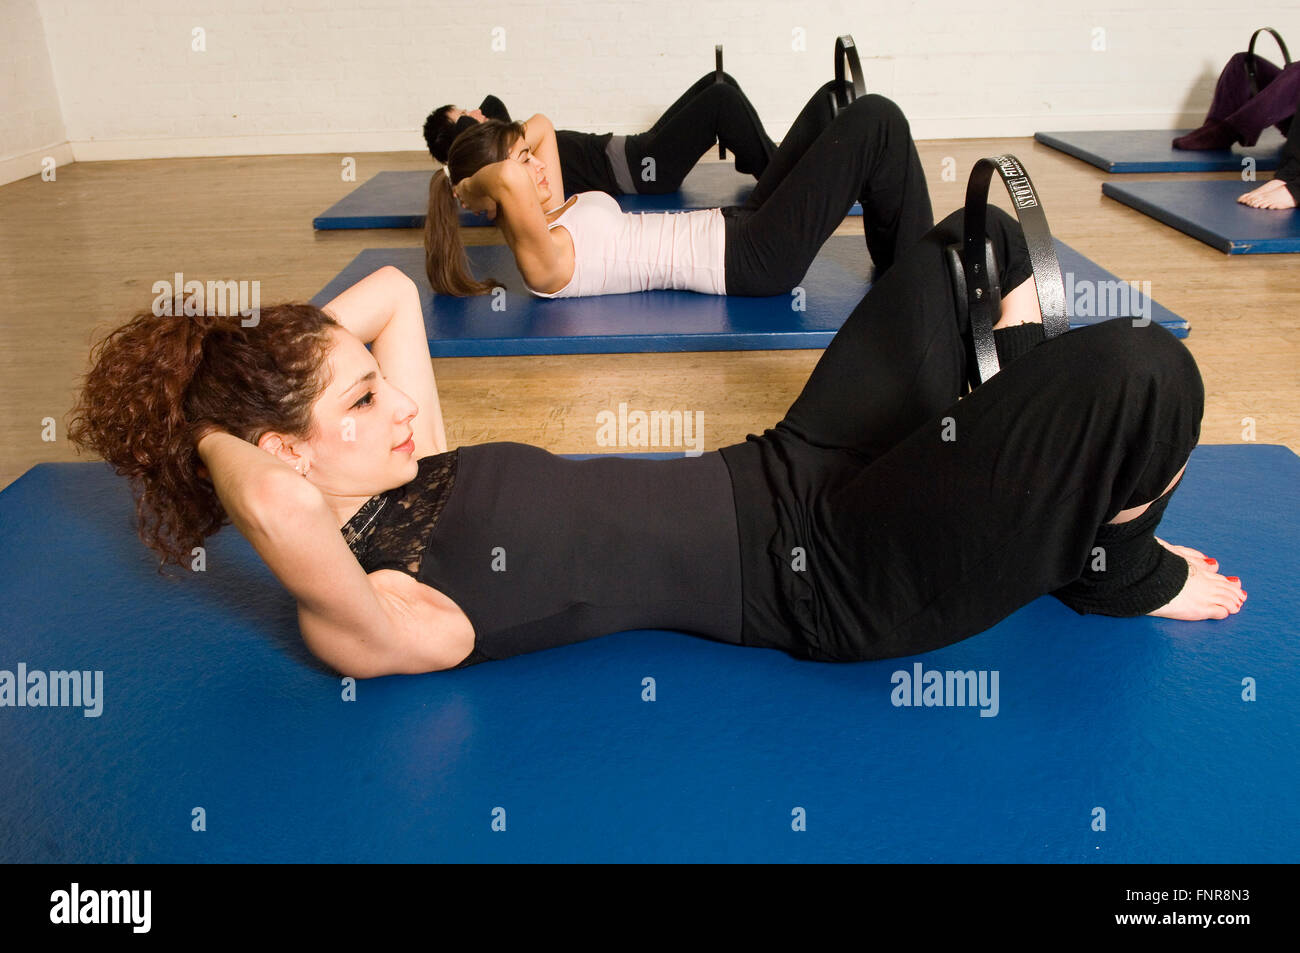 Pilate's Curl Up position using an inner thigh squeezing fitness. - Stock Image